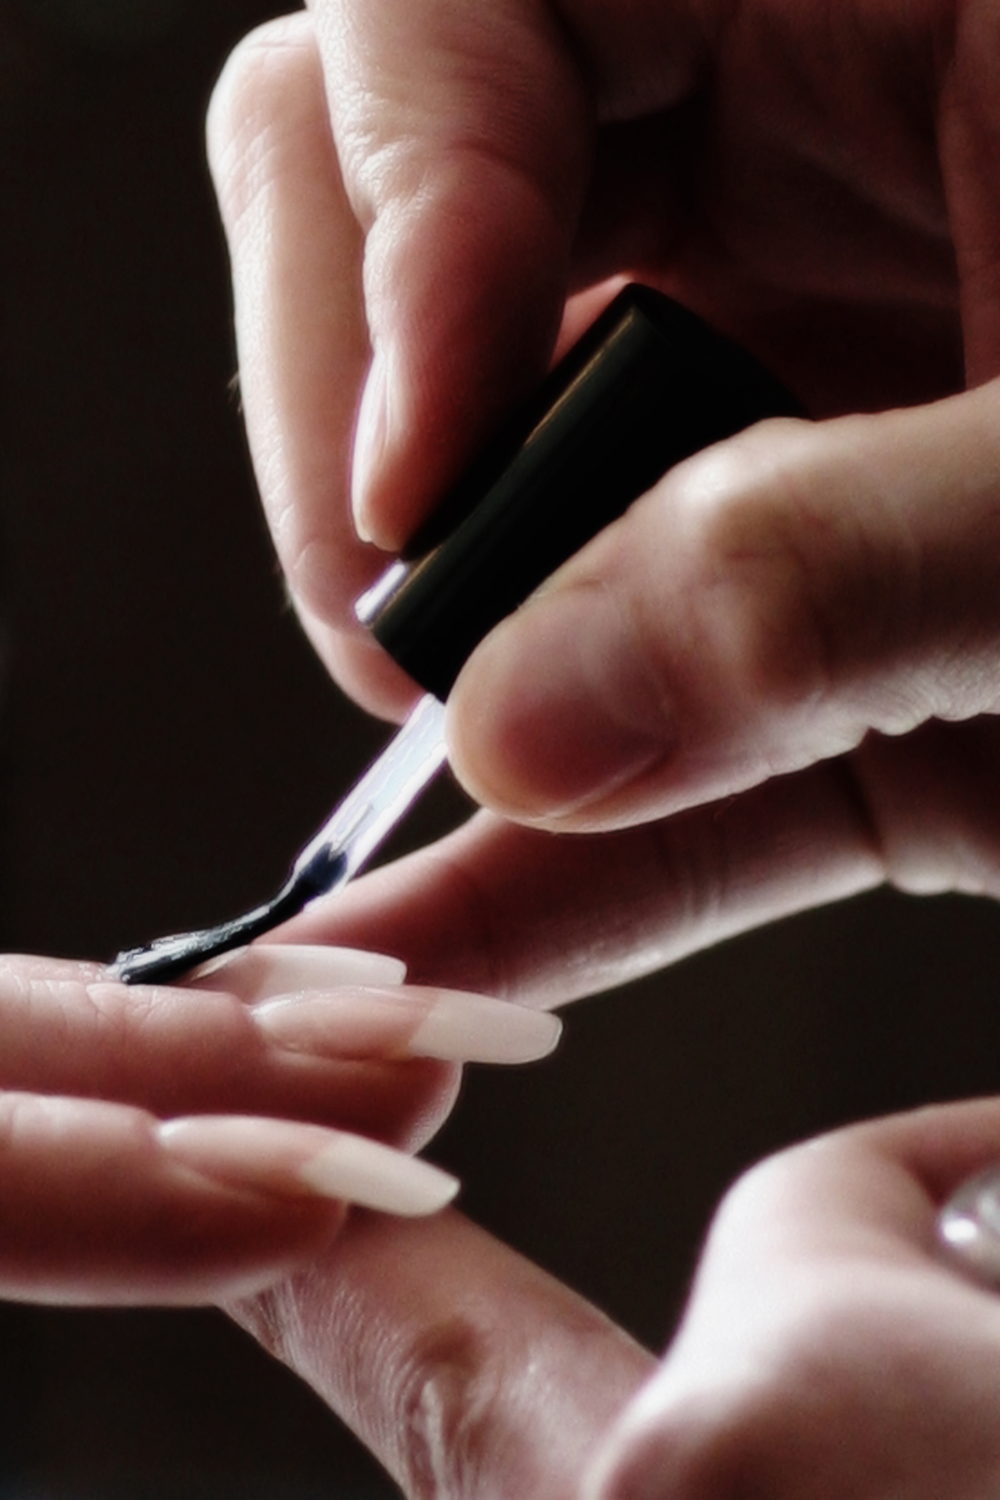 The bride gets a manicure during the getting ready moments at her wedding at the Ritz Carlton Sarasota.